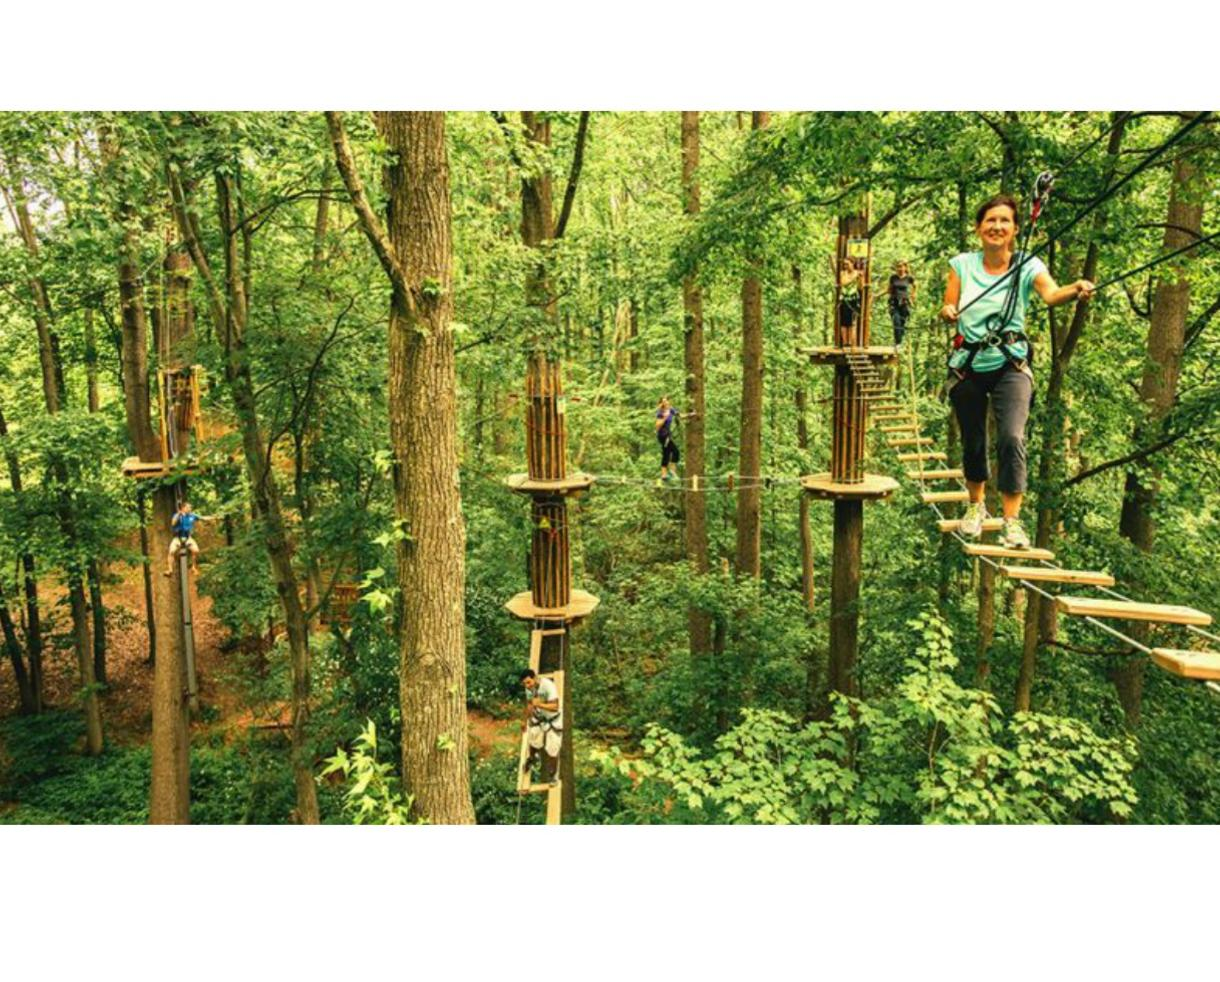 FLASH SALE! $23+ for Go Ape Treetop Junior or Treetop Adventure - BRAND NEW Springfield, VA Location + 12 Other U.S. Locations!